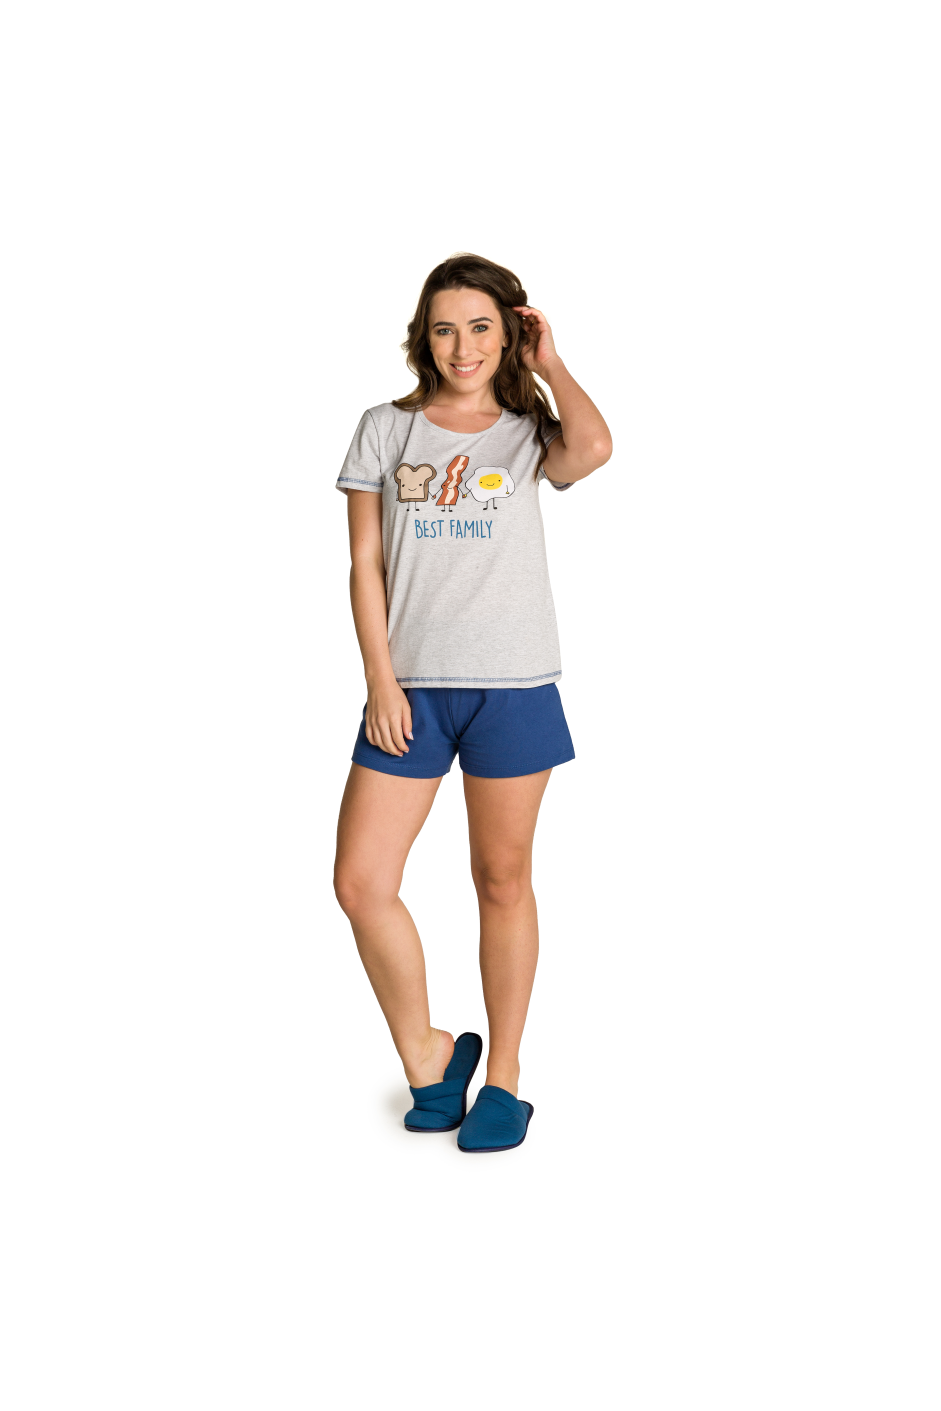 001/K - Pijama Adulto Feminino Best Family